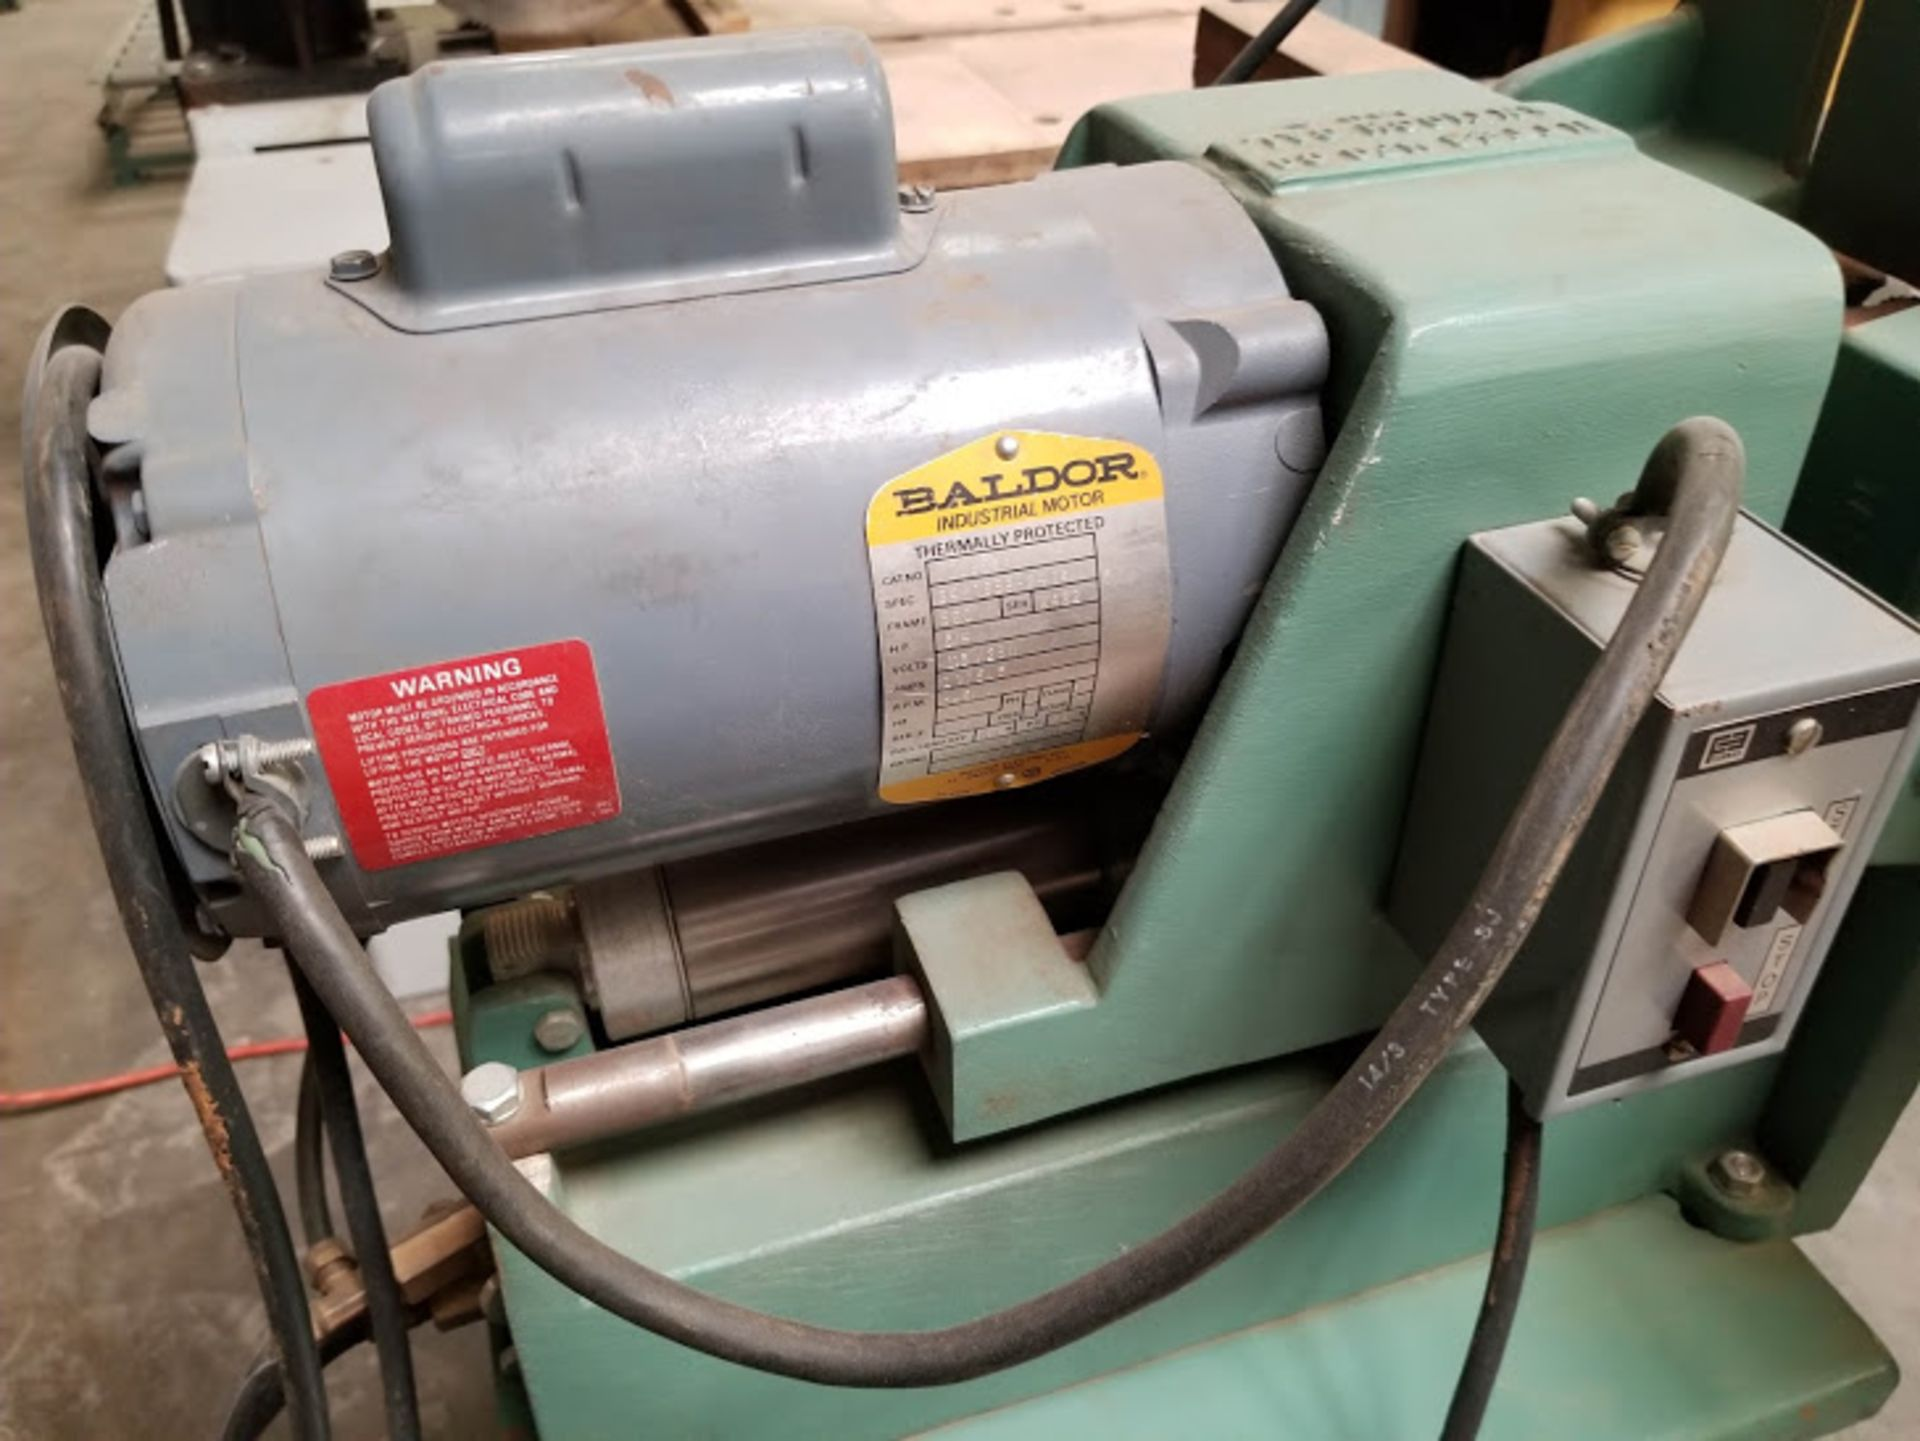 Lot 22 - Ritter 1 Spindle Boring Machine, Pneumatic Foot Pedal, Baldor 3/4 HP 115/230 Volts 1 Phase Motor